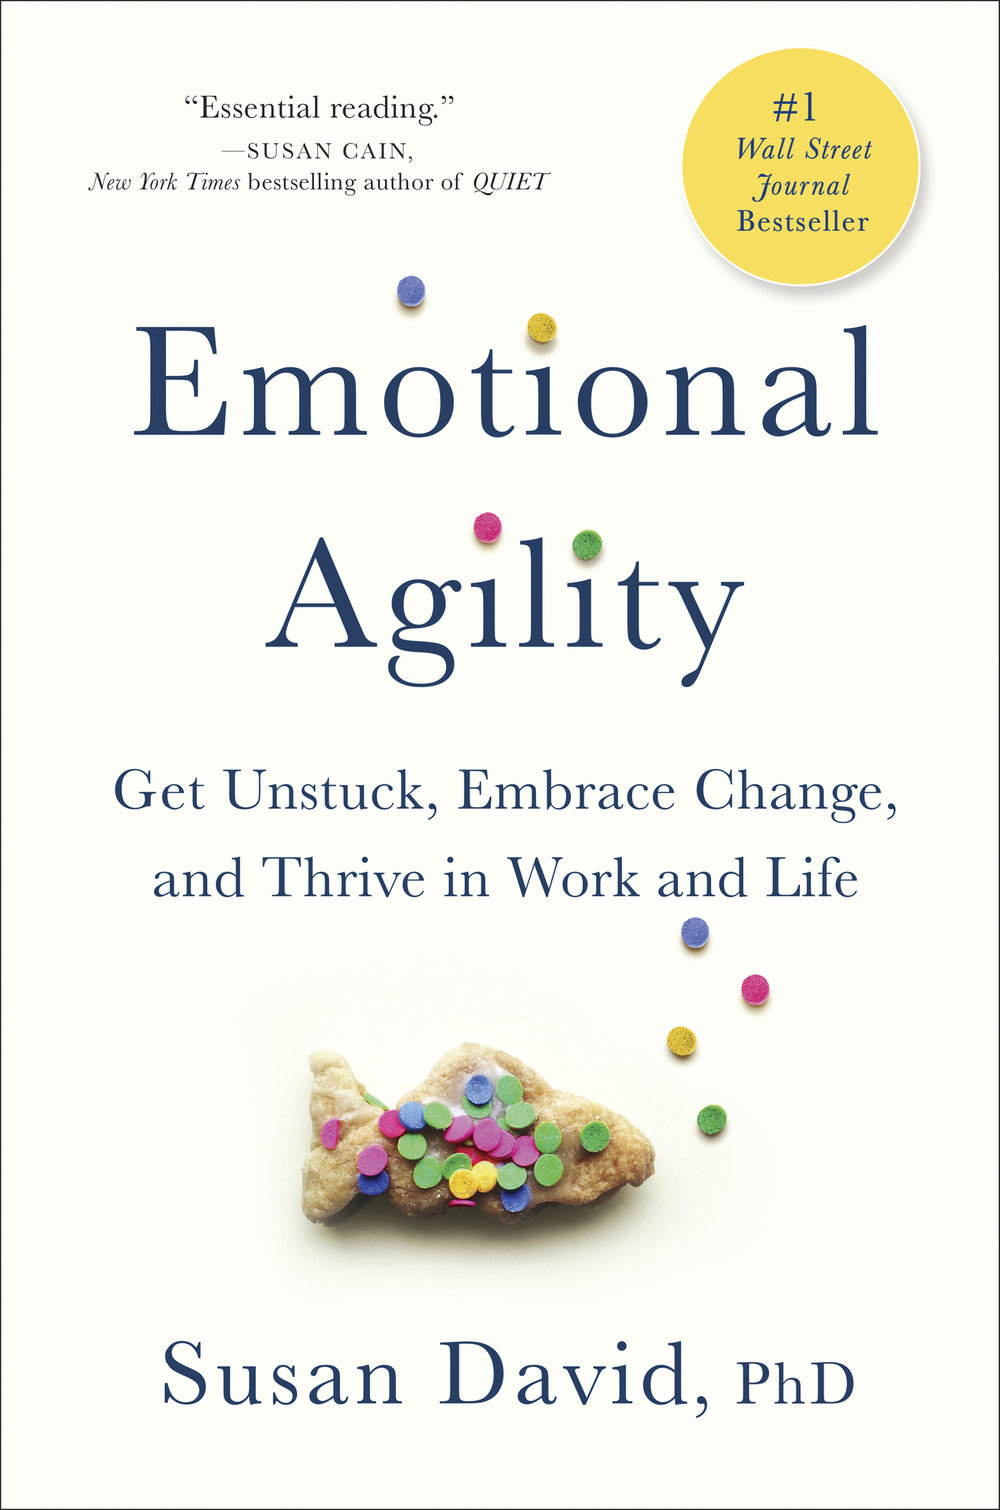 Emotional Agility (Susan David)